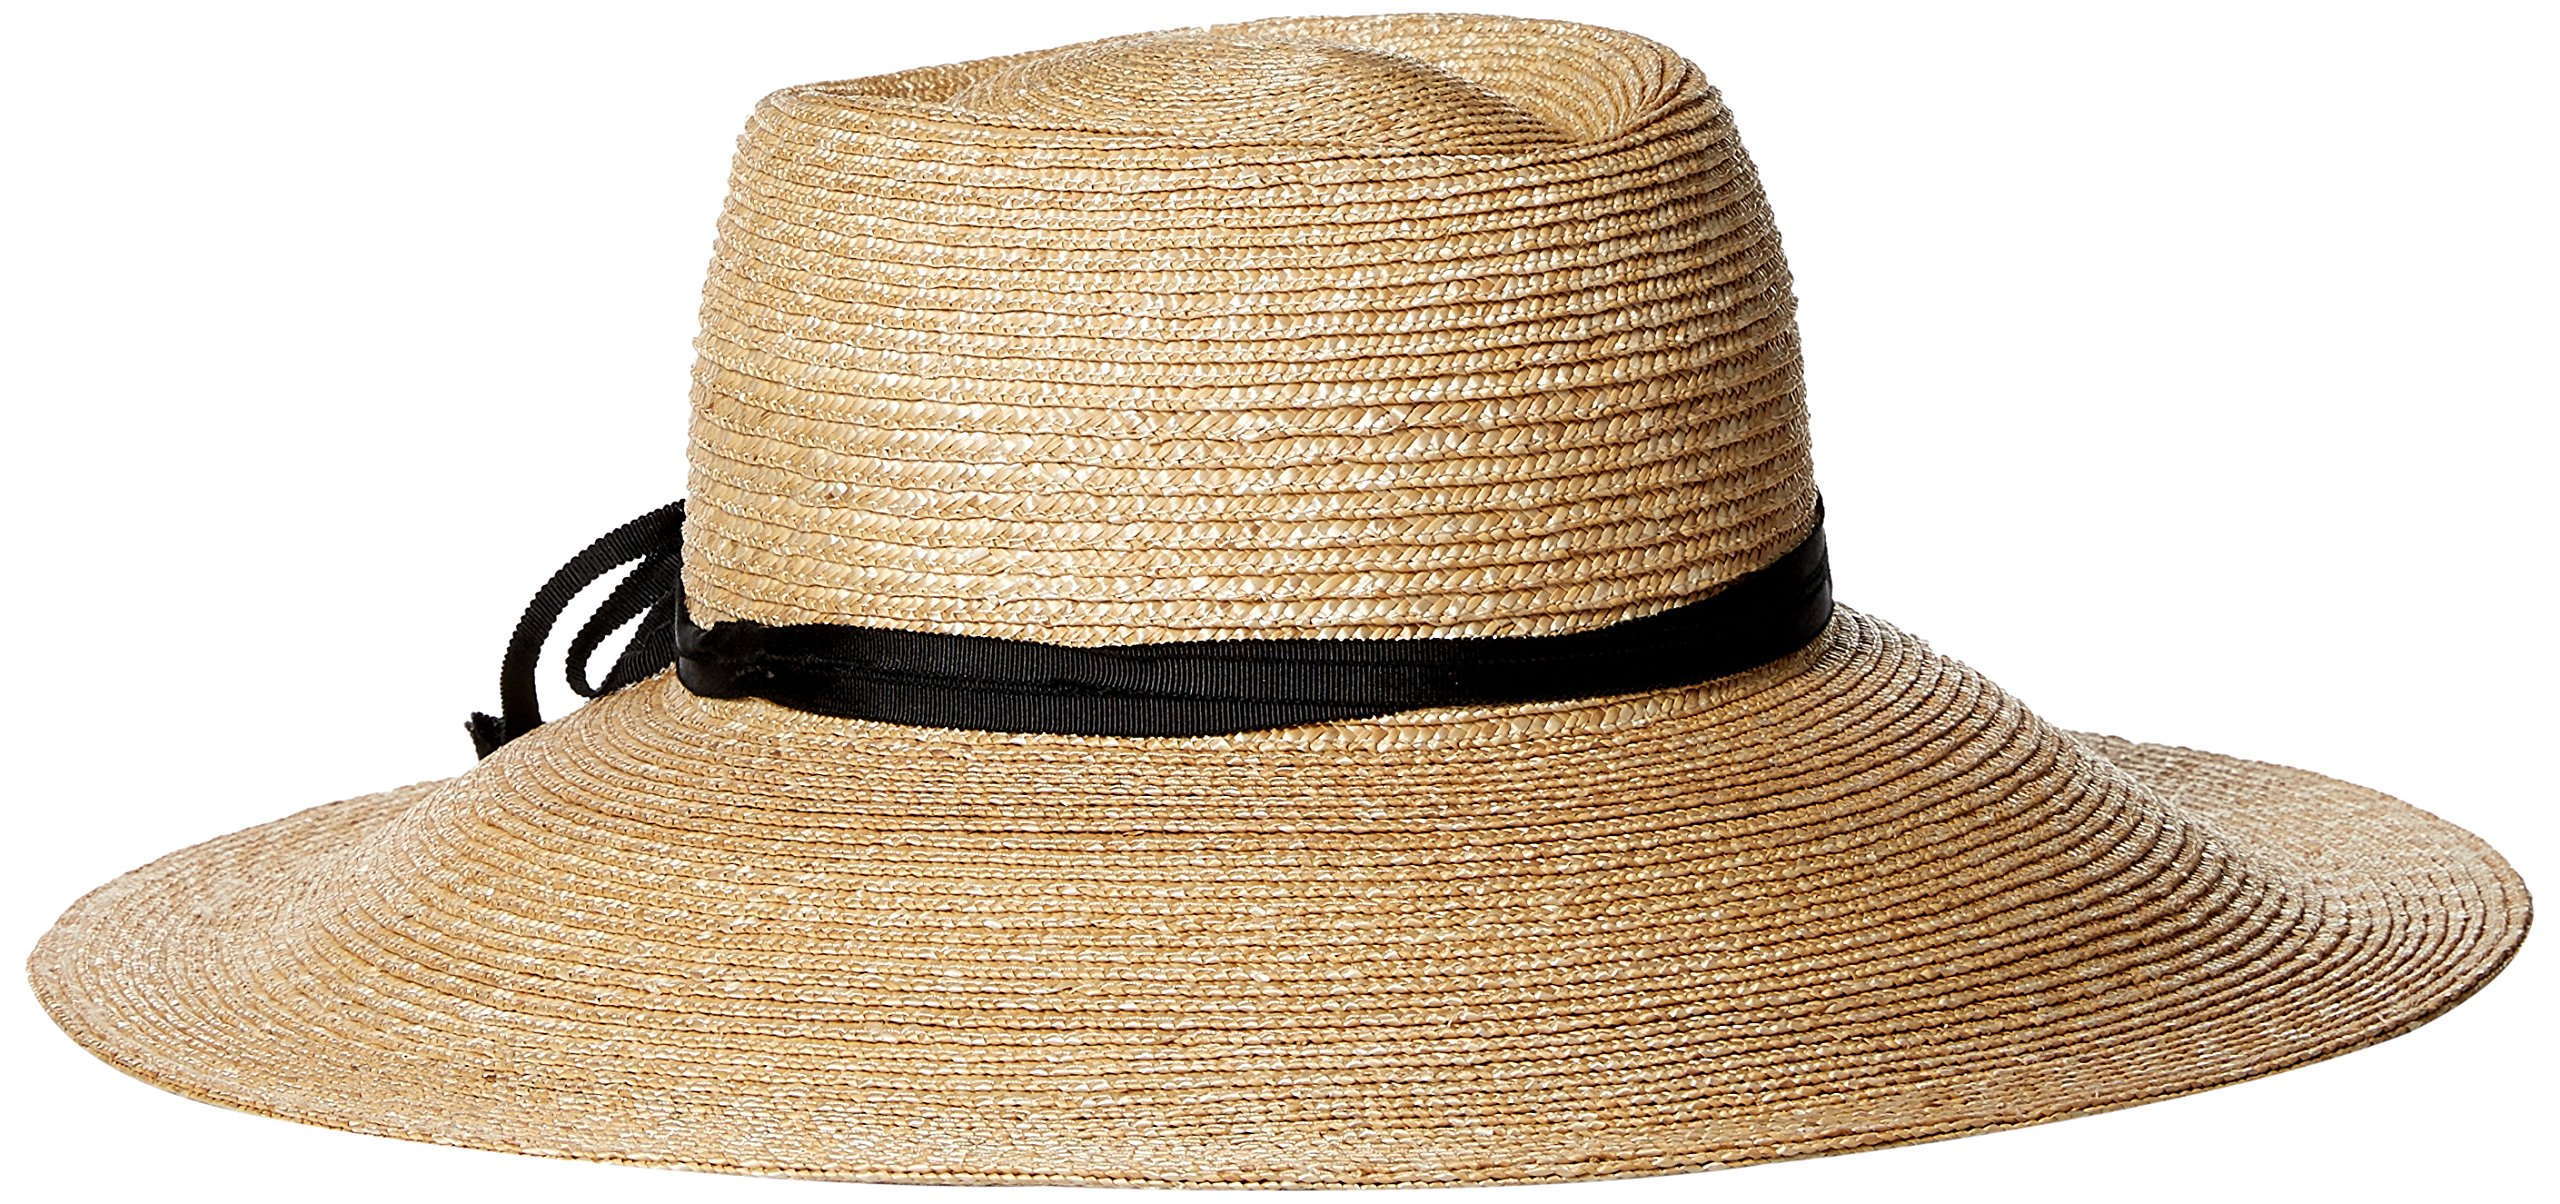 Gottex Women's Capri Fine Milan Sun Hat with Ribbon Trim, Rated UPF 50+ for Max Sun Protection, Natural/Black, Adjustable Head Size